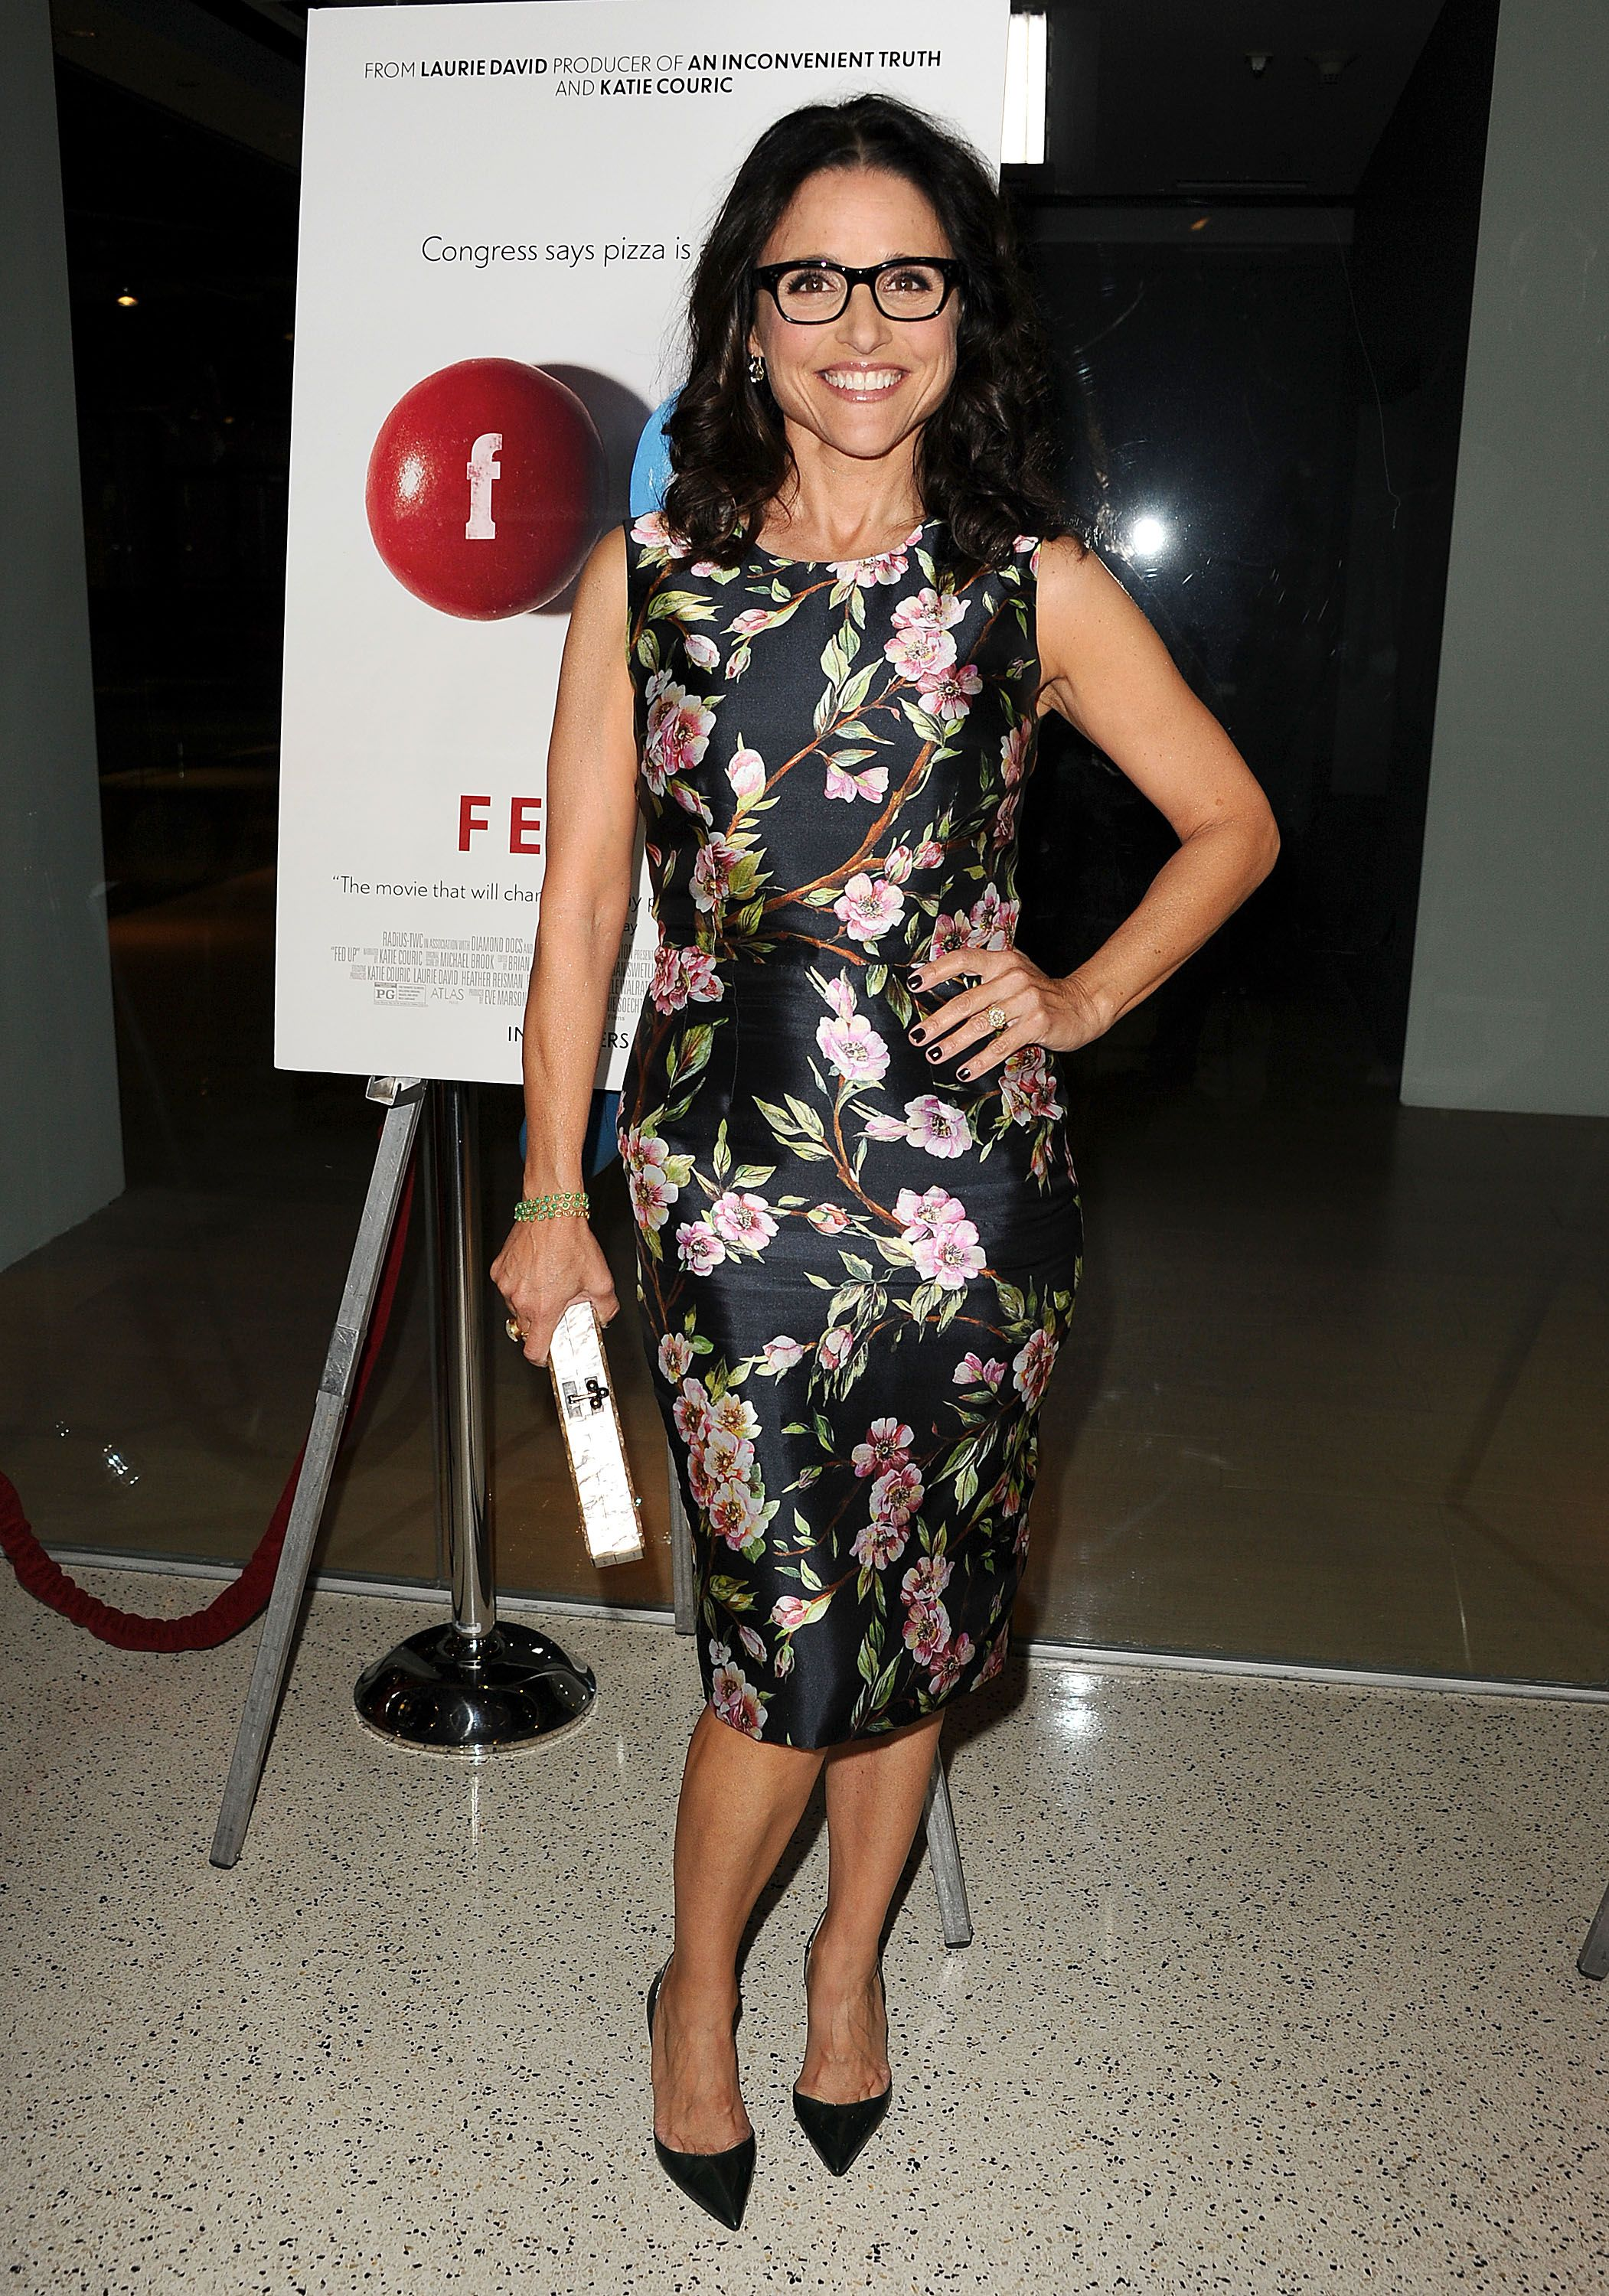 Julia Louis Dreyfus Ever Been Nude a celebration of julia louis-dreyfus's success and style, in